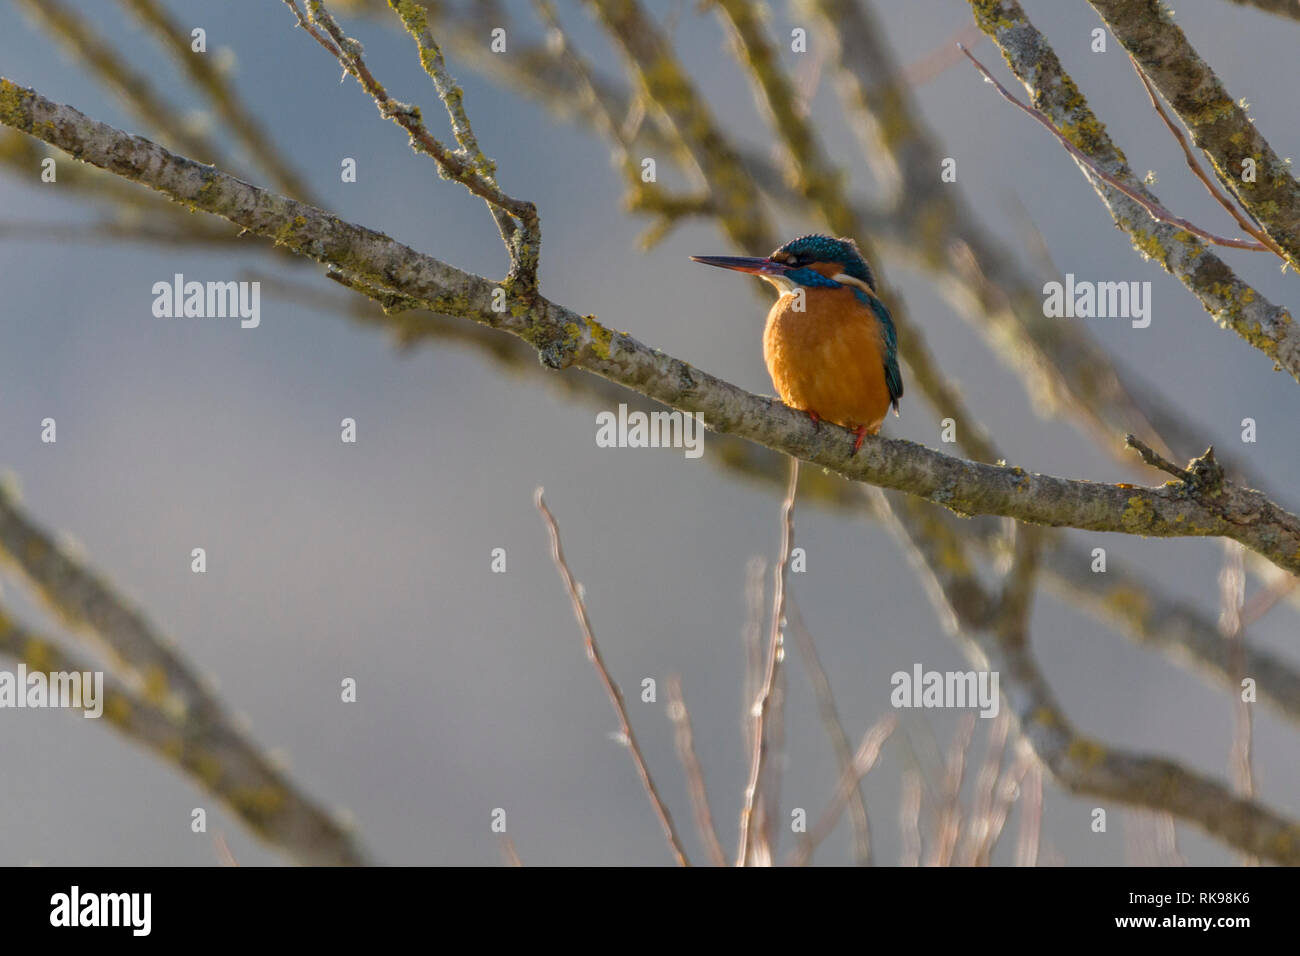 Kingfisher (Alcedo atthis) on branch. Red orange under parts electric blue upper parts white throat and neck patches long black bill and short tail. - Stock Image